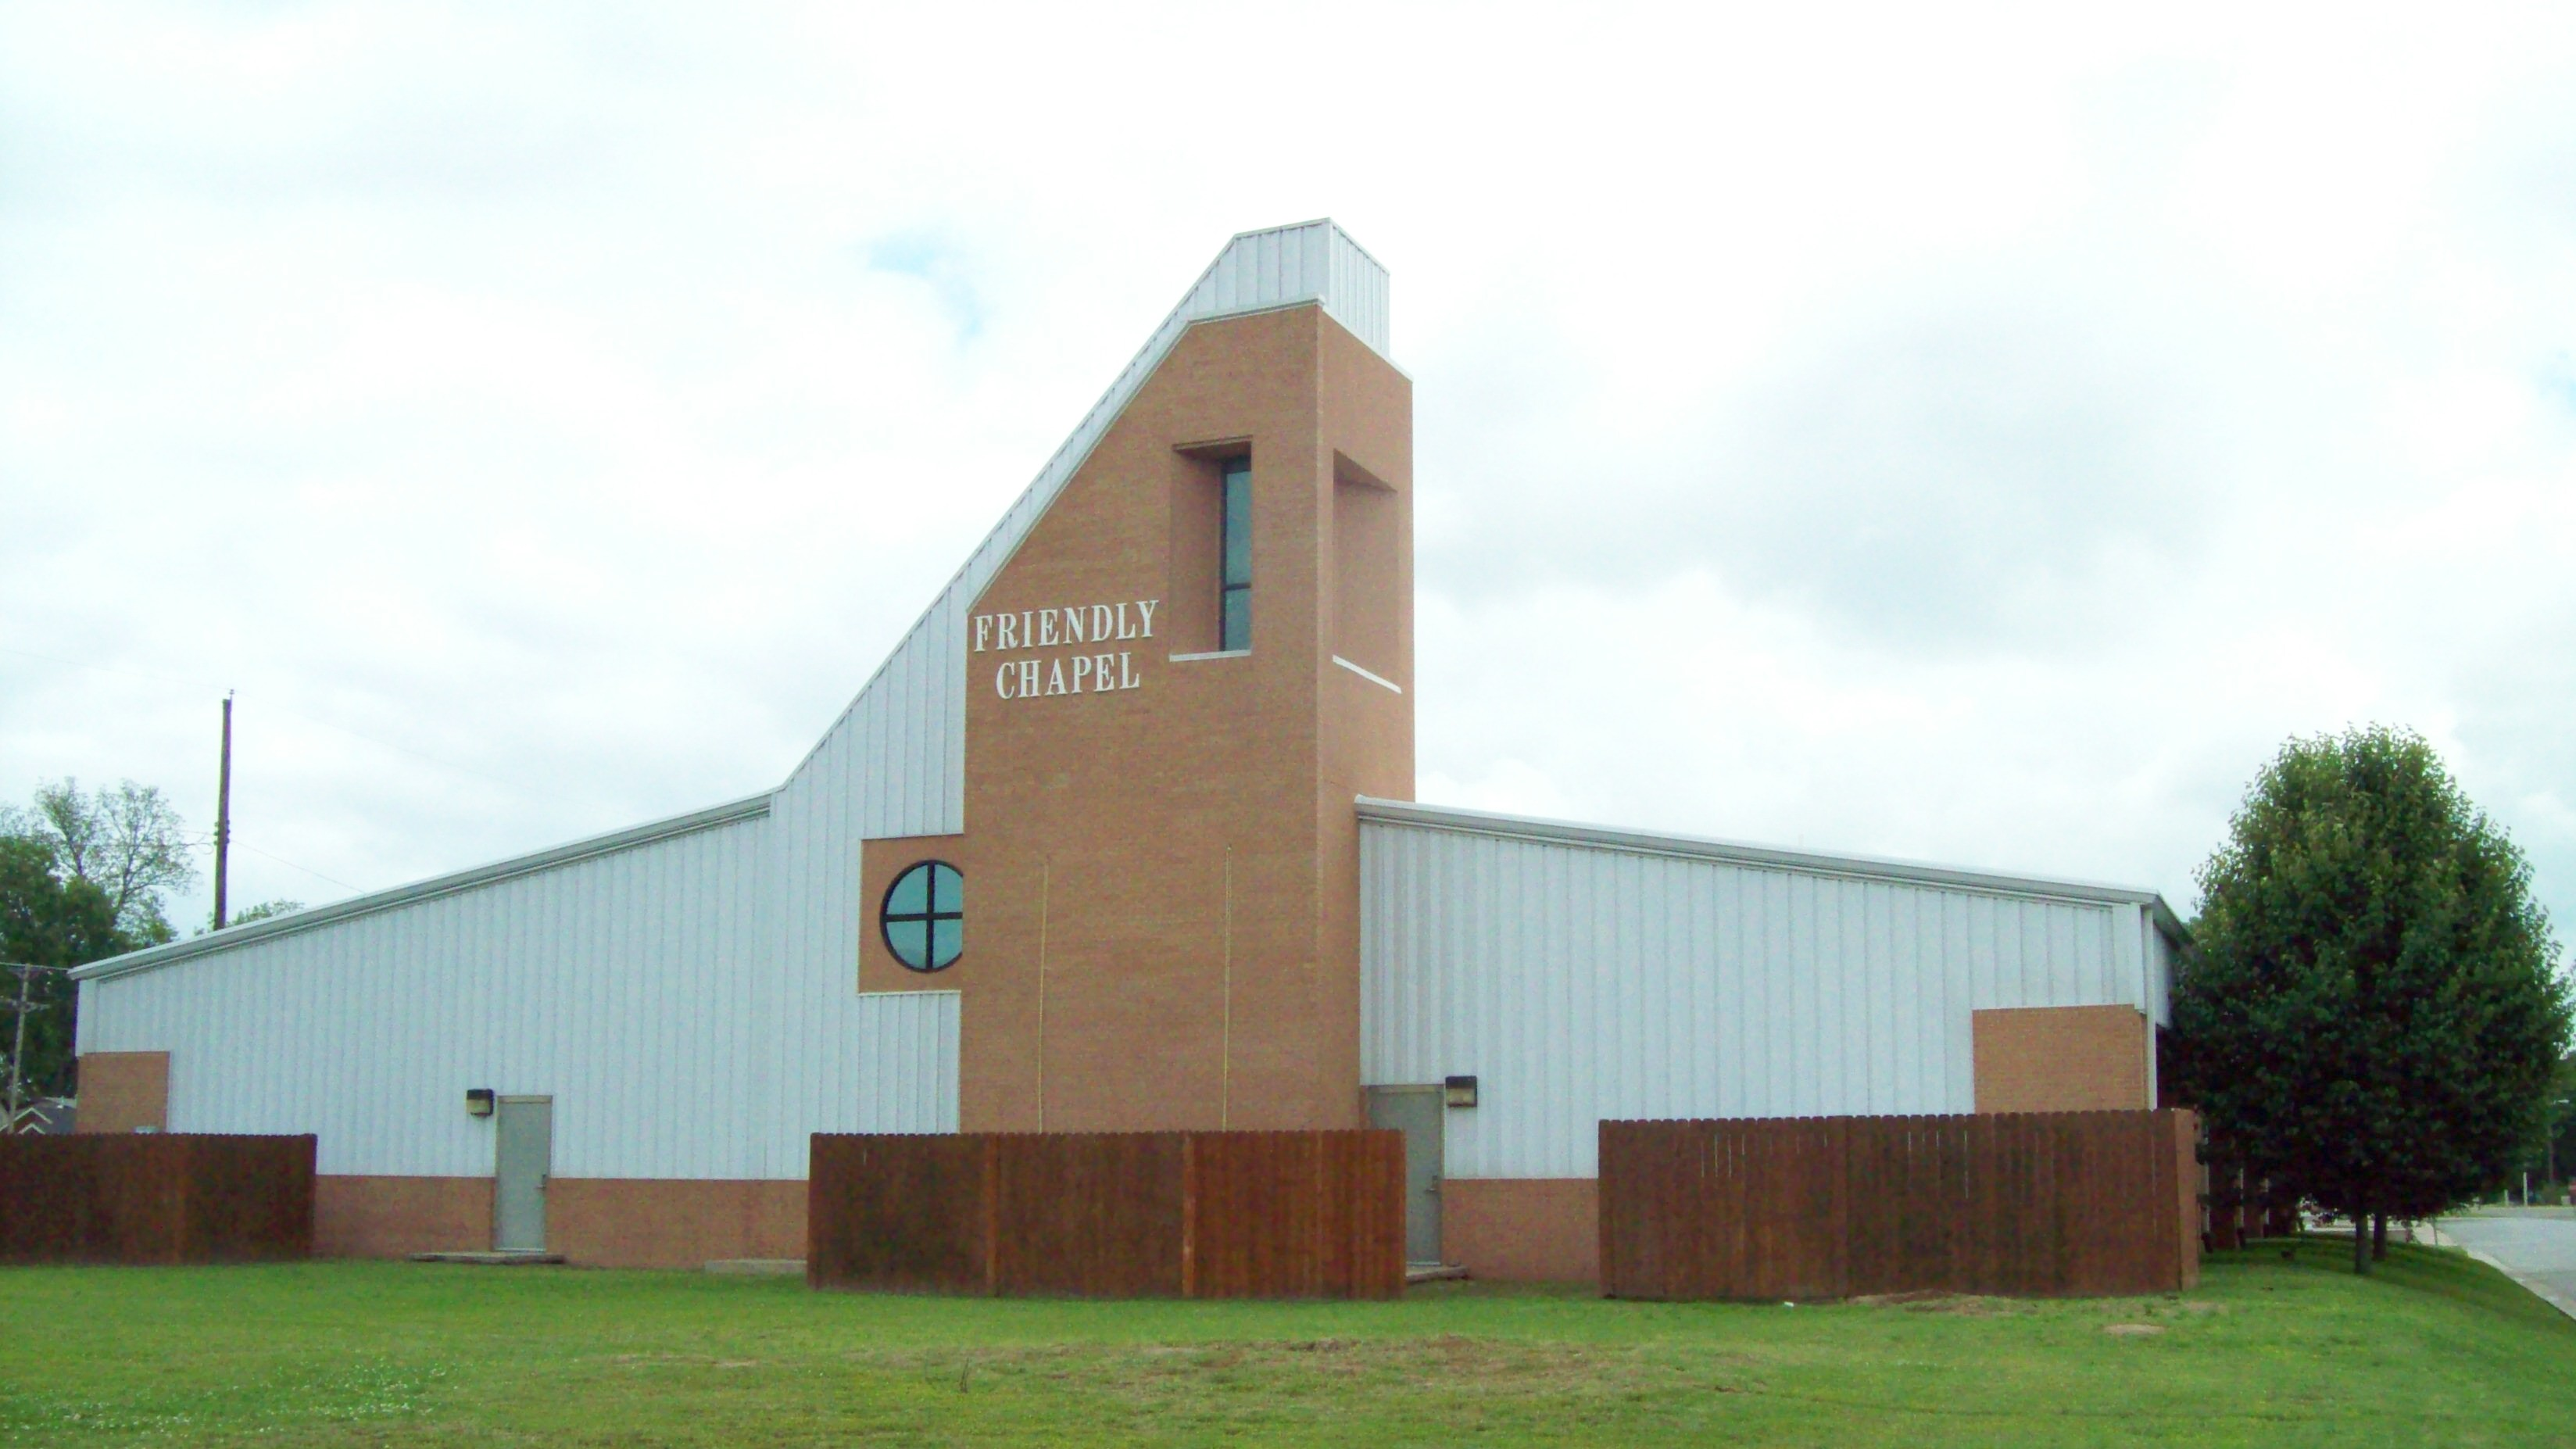 Friendly Chapel Church of the Nazarene in North Little Rock, Arkansas